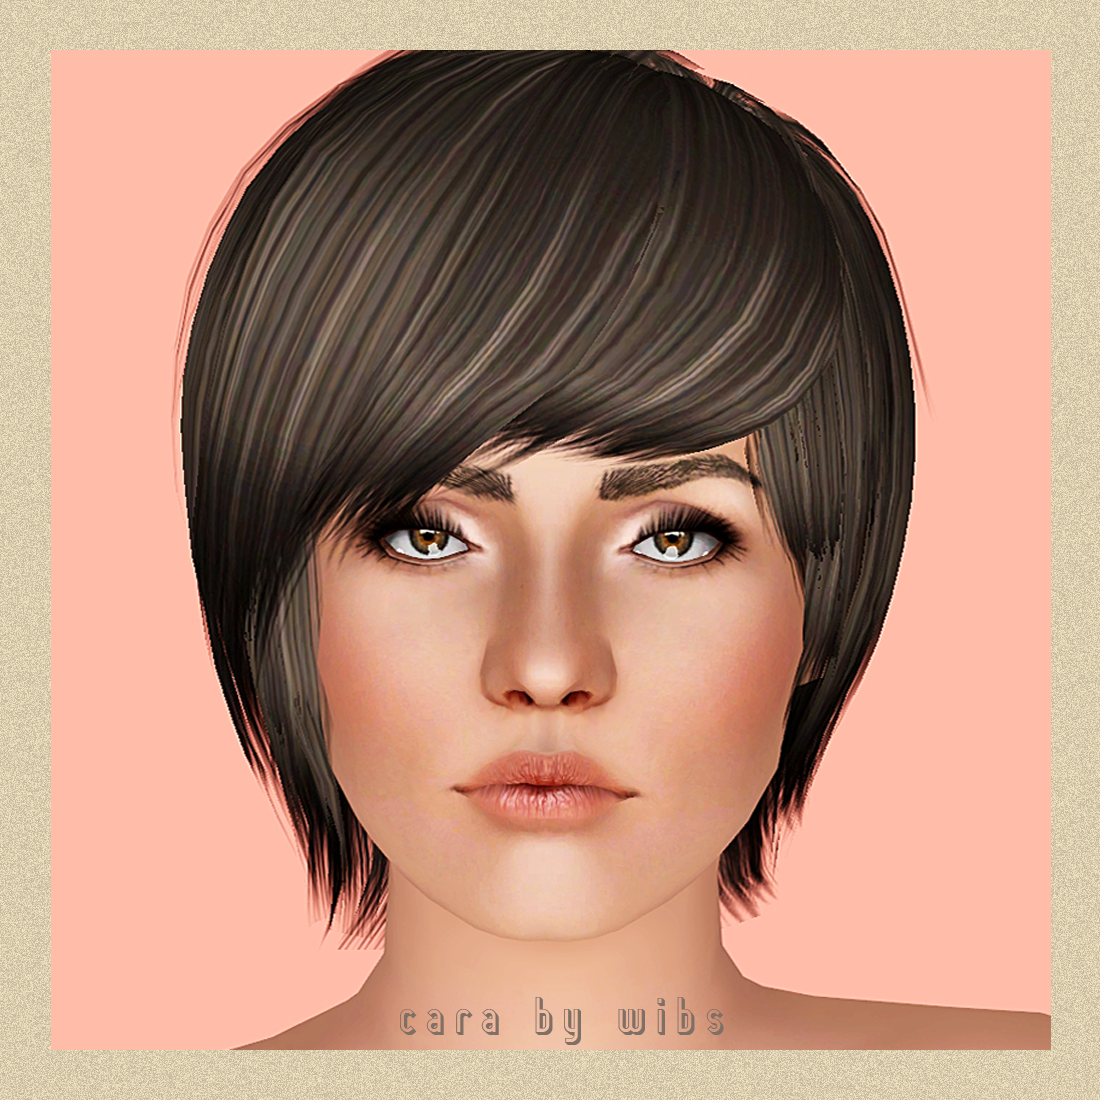 Cara by Wibs